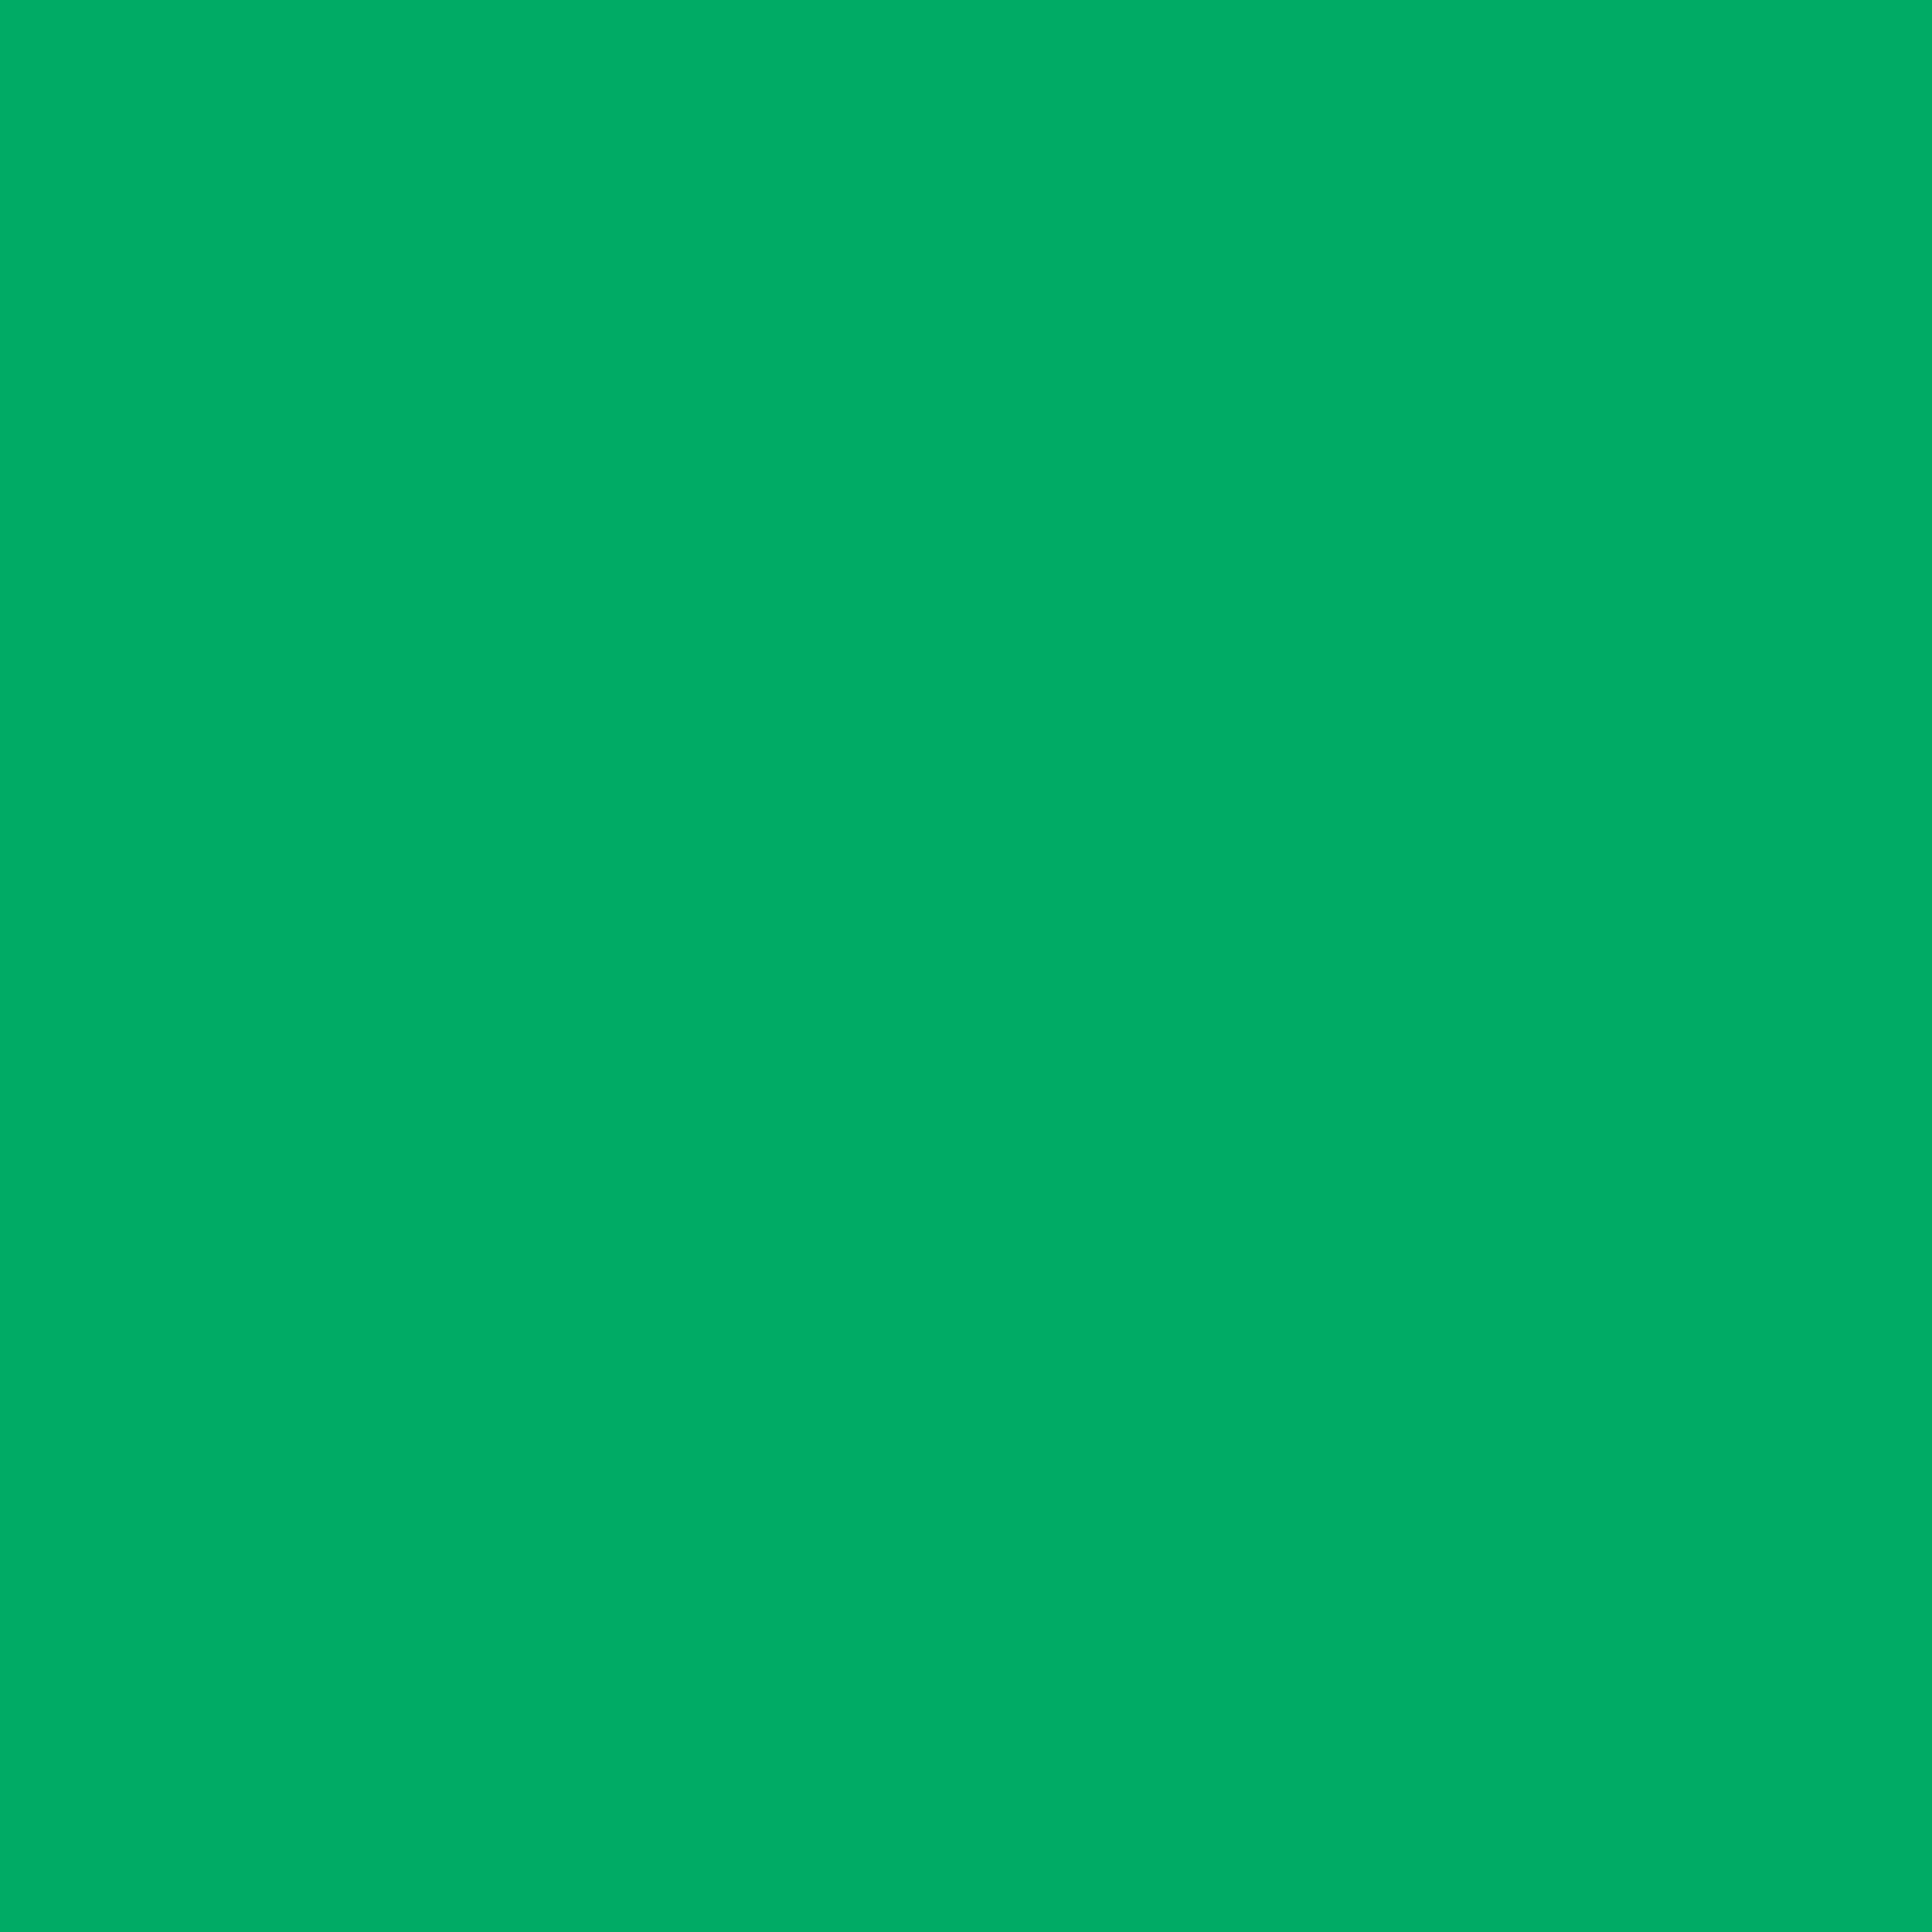 3600x3600 GO Green Solid Color Background